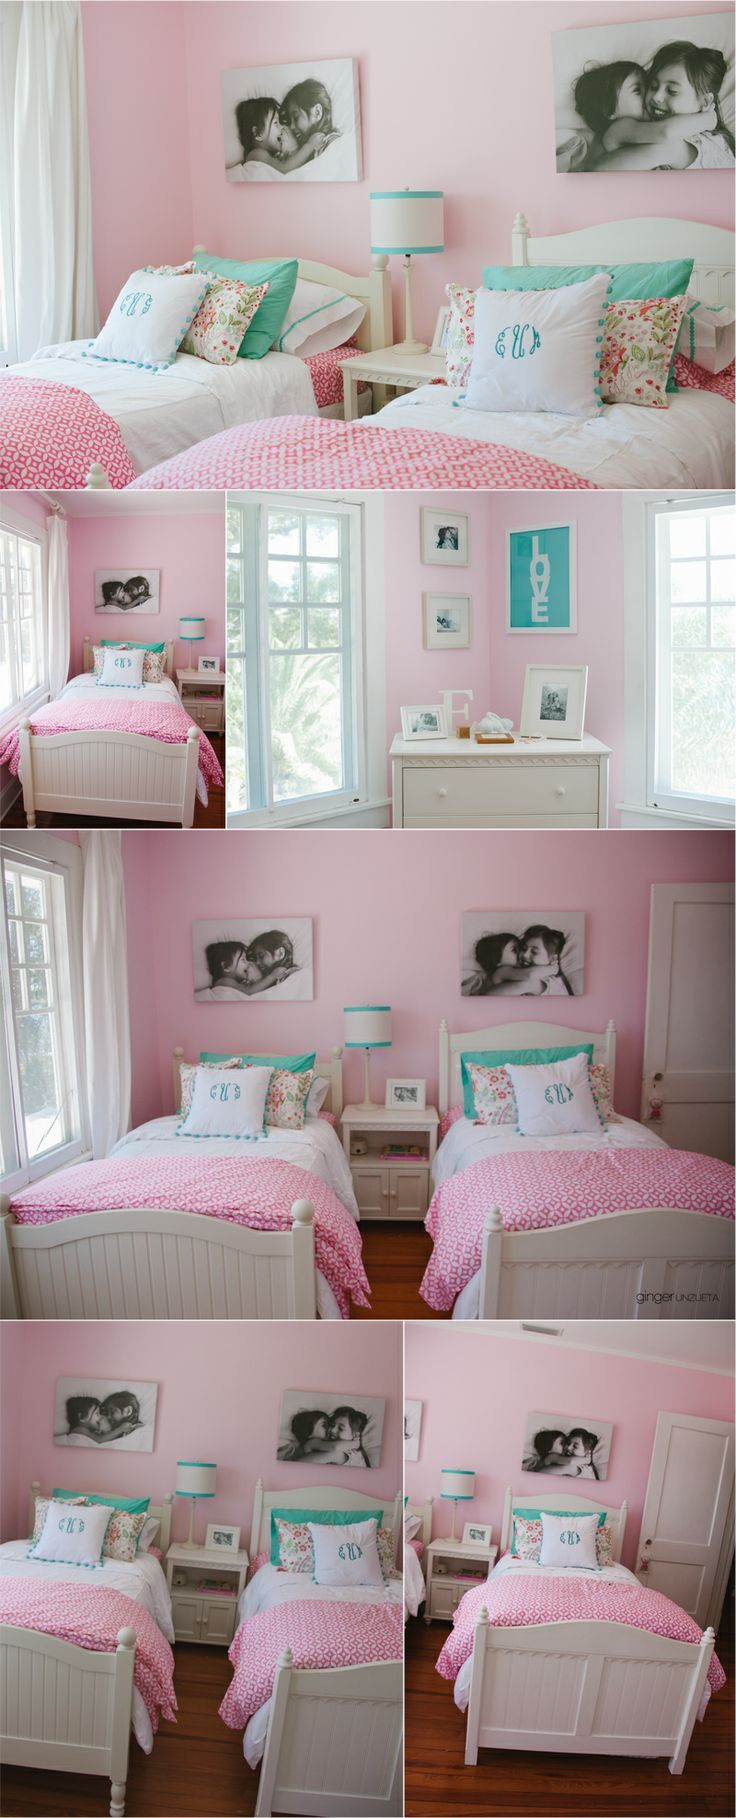 Pretty Shared Bedroom Designs For Girls: 82 Best Images About Toddler Girl Bedroom Ideas On